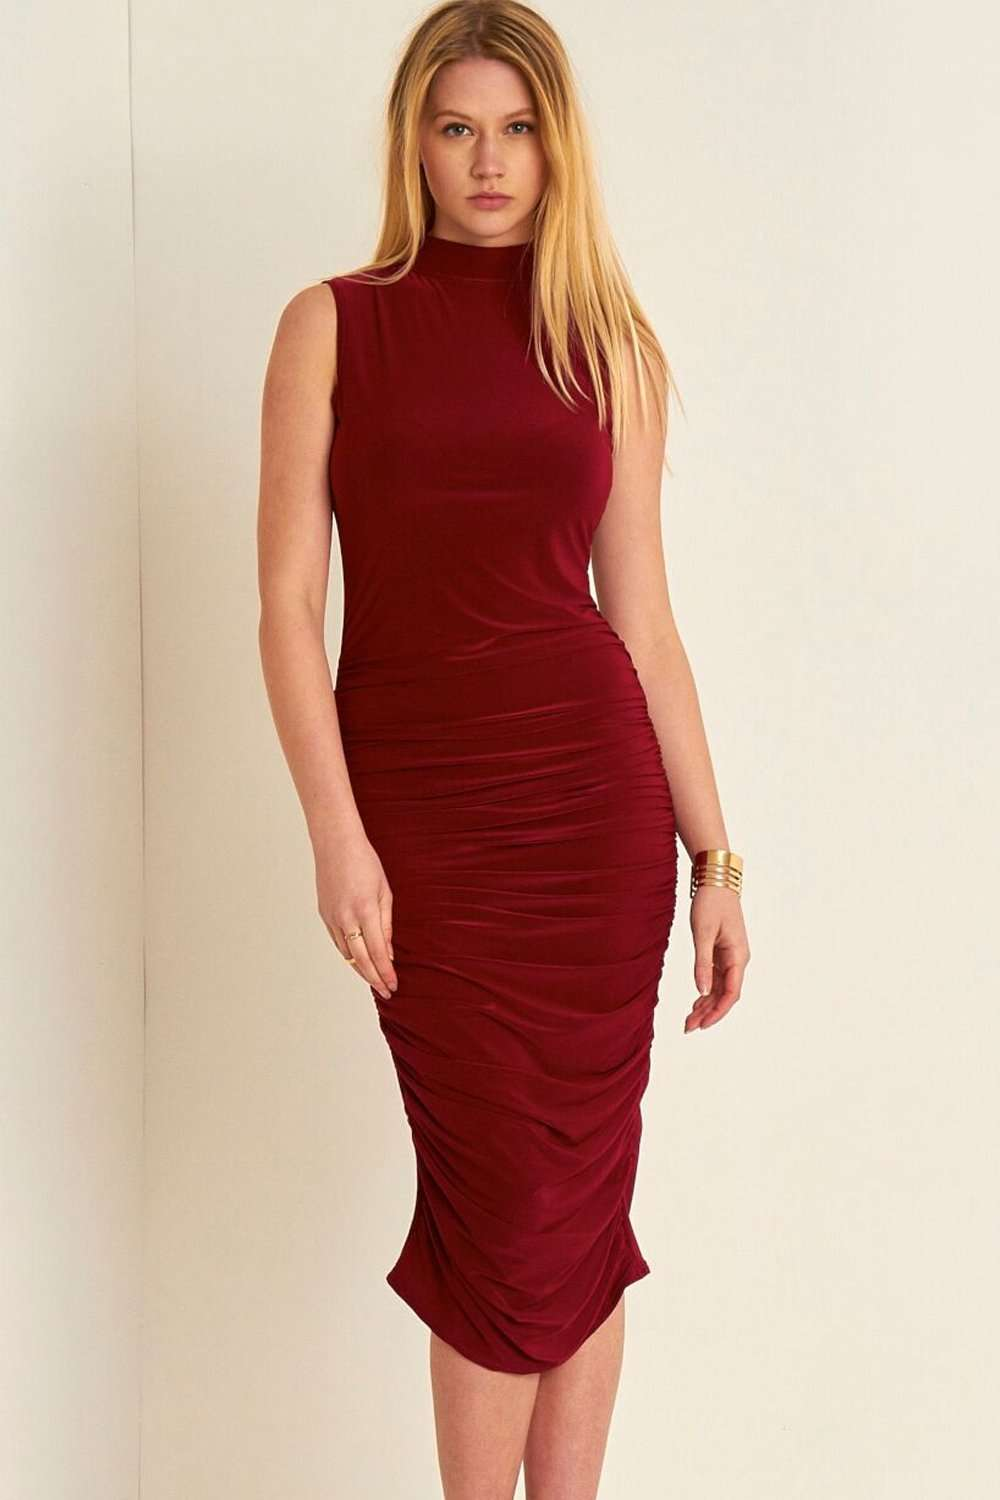 Hanna High Neck Sleeveless Ruched Midi Dress - bejealous-com